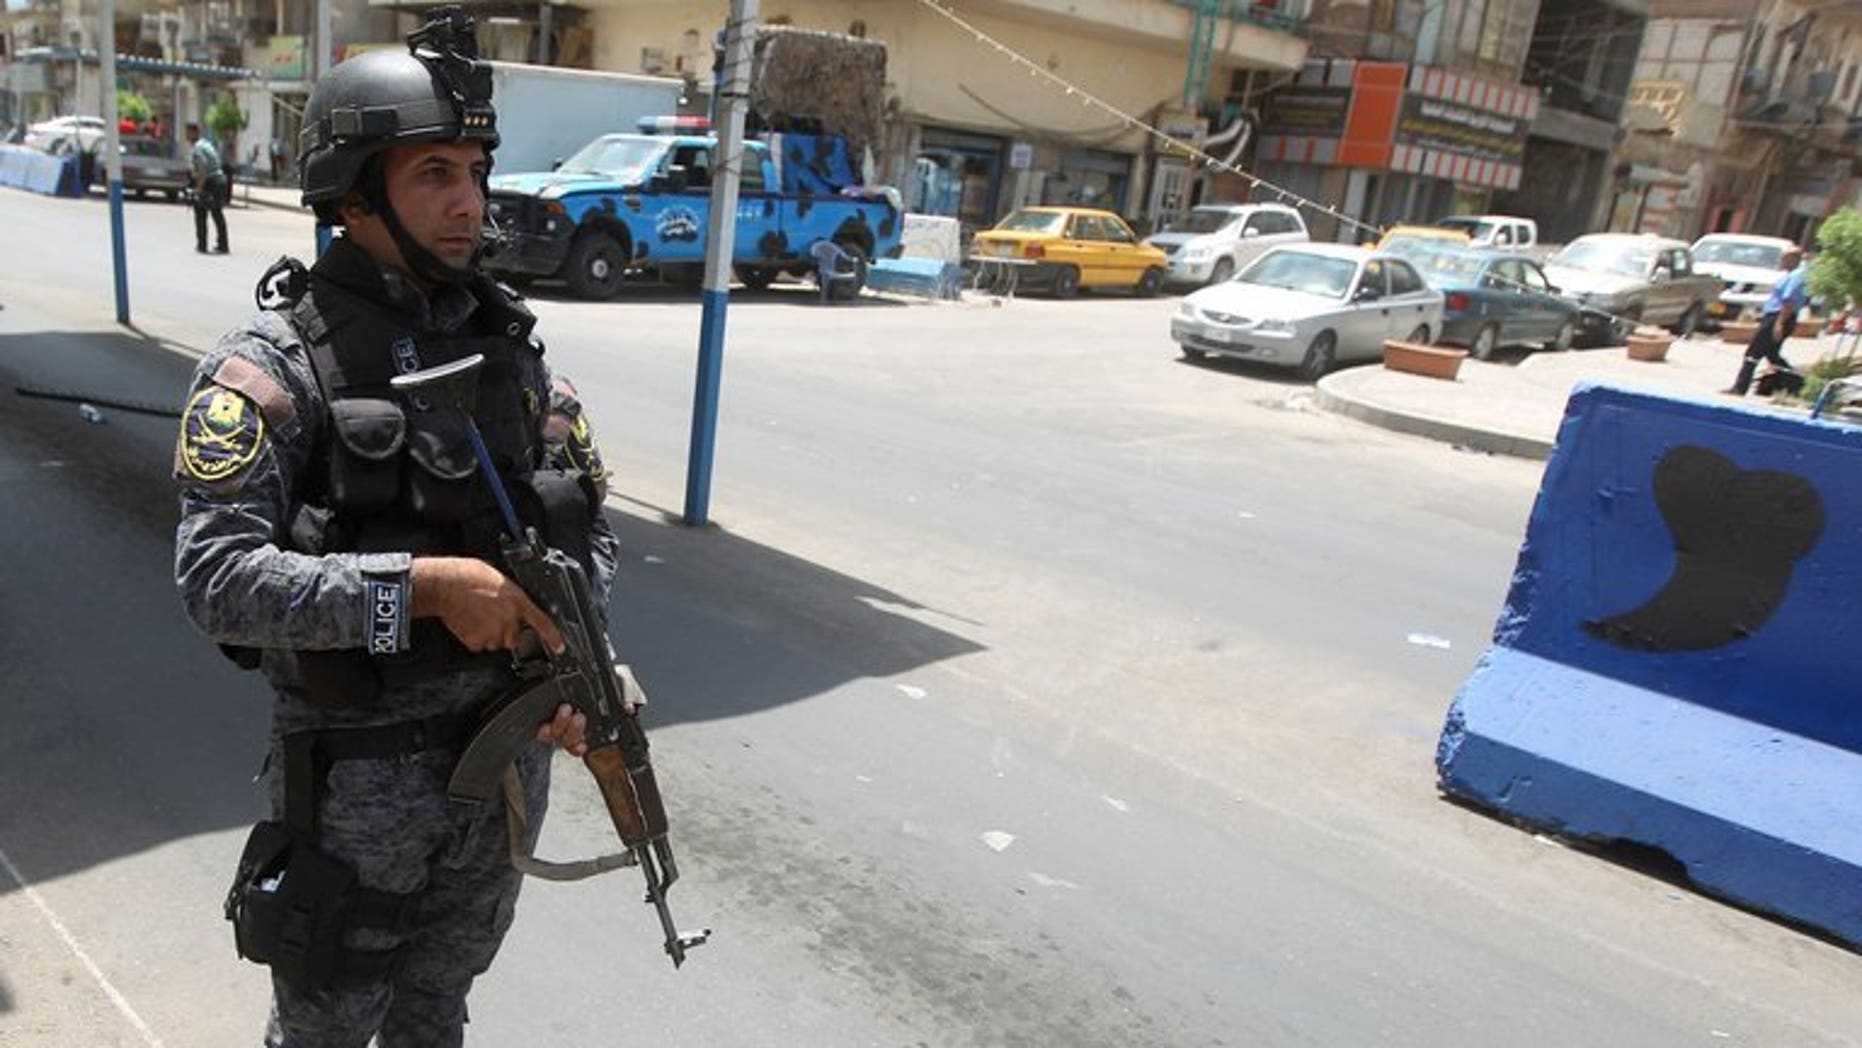 A policeman controls vehicles at a checkpoint on July 23, 2013 in the capital Baghdad, where security measures were imposed in order to catch the prisoners who escaped from Abu Ghraib prison after an attack. Iraq has put 17 people to death, 16 of them on terrorism-related charges, the justice ministry said Monday, the latest in a series of executions that have drawn international condemnation.